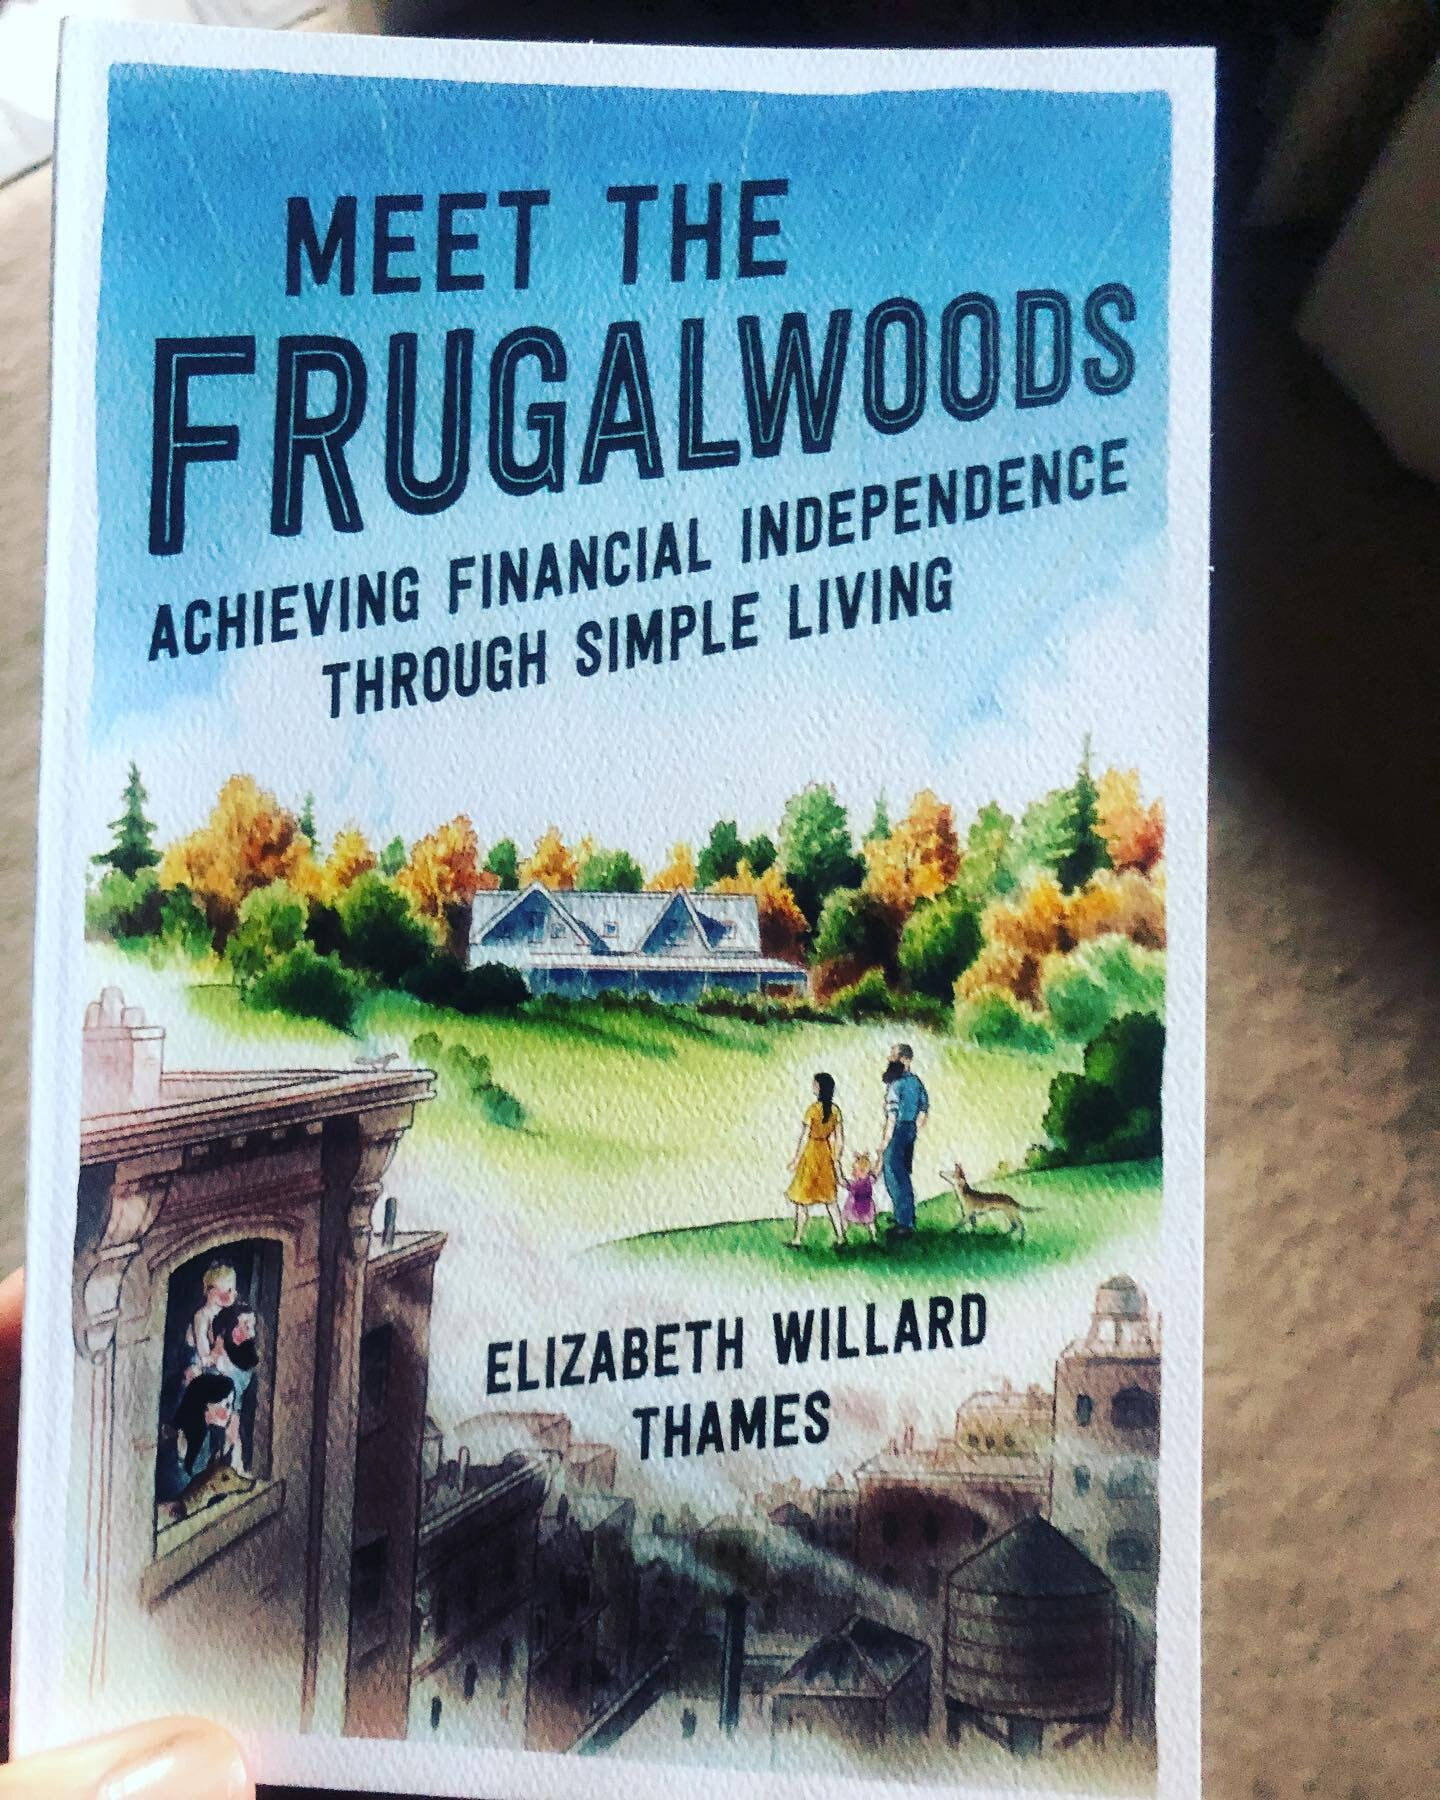 "I just finished this book and really enjoyed it. It fired me up and inspired me—I love it when people design lives they LOVE- on purpose- and go after it ?? % all-in. Here are some of my favorite quotes: ""Once you begin down the road of frugalizing, it's nearly impossible to stop. It becomes a game, a competition, and an invigorating challenge. You get to win at your own life.""  ""Letting go of caring what other people thought enabled me to figure out what I really wanted out of life, not what society wanted out of my life. I came to understand that, in the end, the only person who truly cares how you live your life is you.""  ""Too often, the arc of our lives and the very substance of what we do day after day is dictated to us by our jobs, our debt, and our stuff. Frugality enables us to wrest back control.""   ""The real freedom of choice is to turn our backs on consumption. You're not exerting your free will in spending money, you're turning your free will over to someone else.... so many of us put choice of material possessions ahead of choice over how we spend our lives.""   **And my top fave: ""joy is not a 'done' to-do list; it's the ability to appreciate and savor the simplicity of each day's routine. ????To know that you're living as close to your ideal as possible. Every. Single. Day.""  . . . 5?? - highly recommend this book."